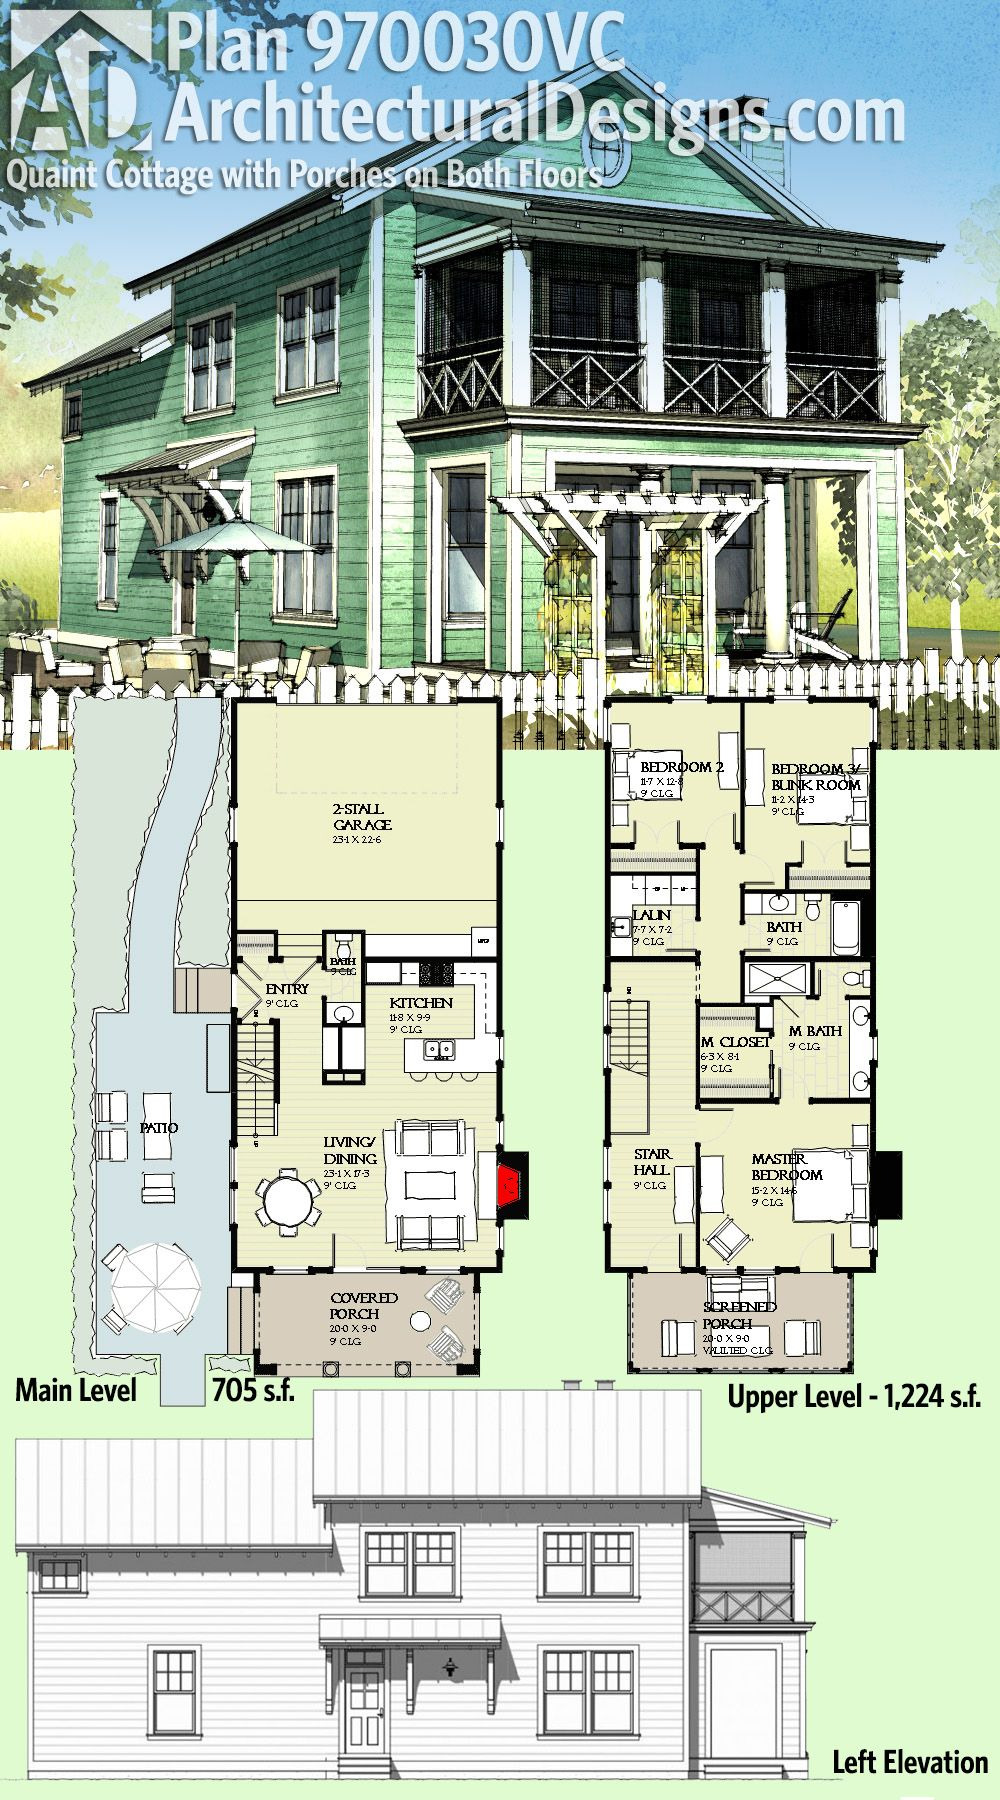 Houses Plans with Porches Best Of Plan Vc Quaint Cottage with Porches On Both Floors In